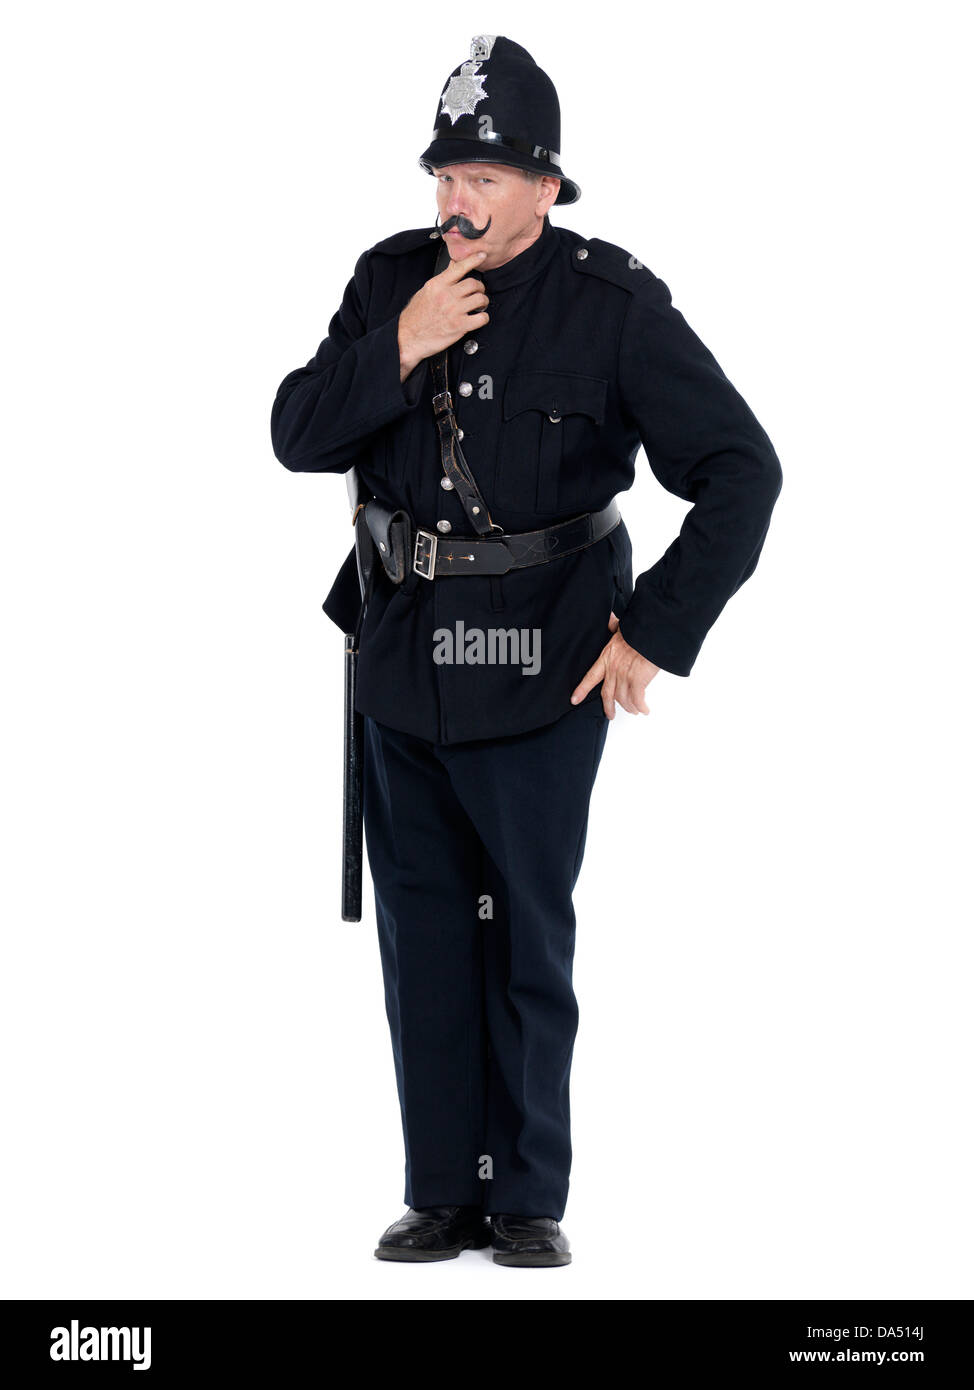 Vintage policeman with serious strict expression isolated on white background - Stock Image